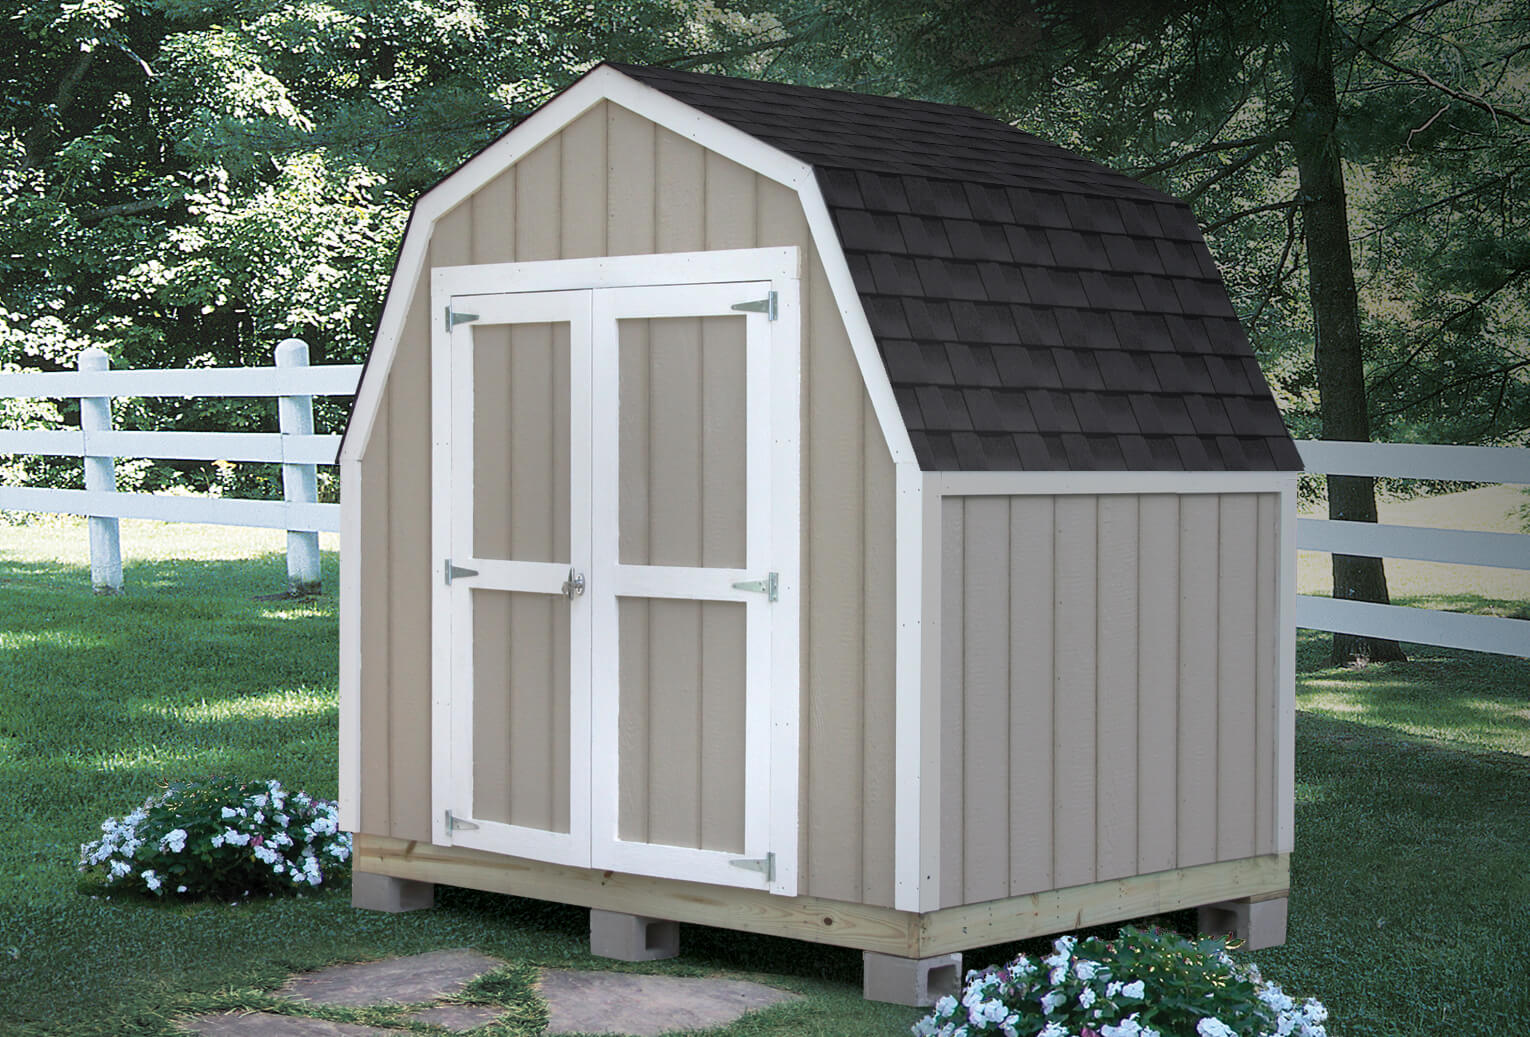 outdoor sheds delivered. built. guaranteed. UIMNCBZ